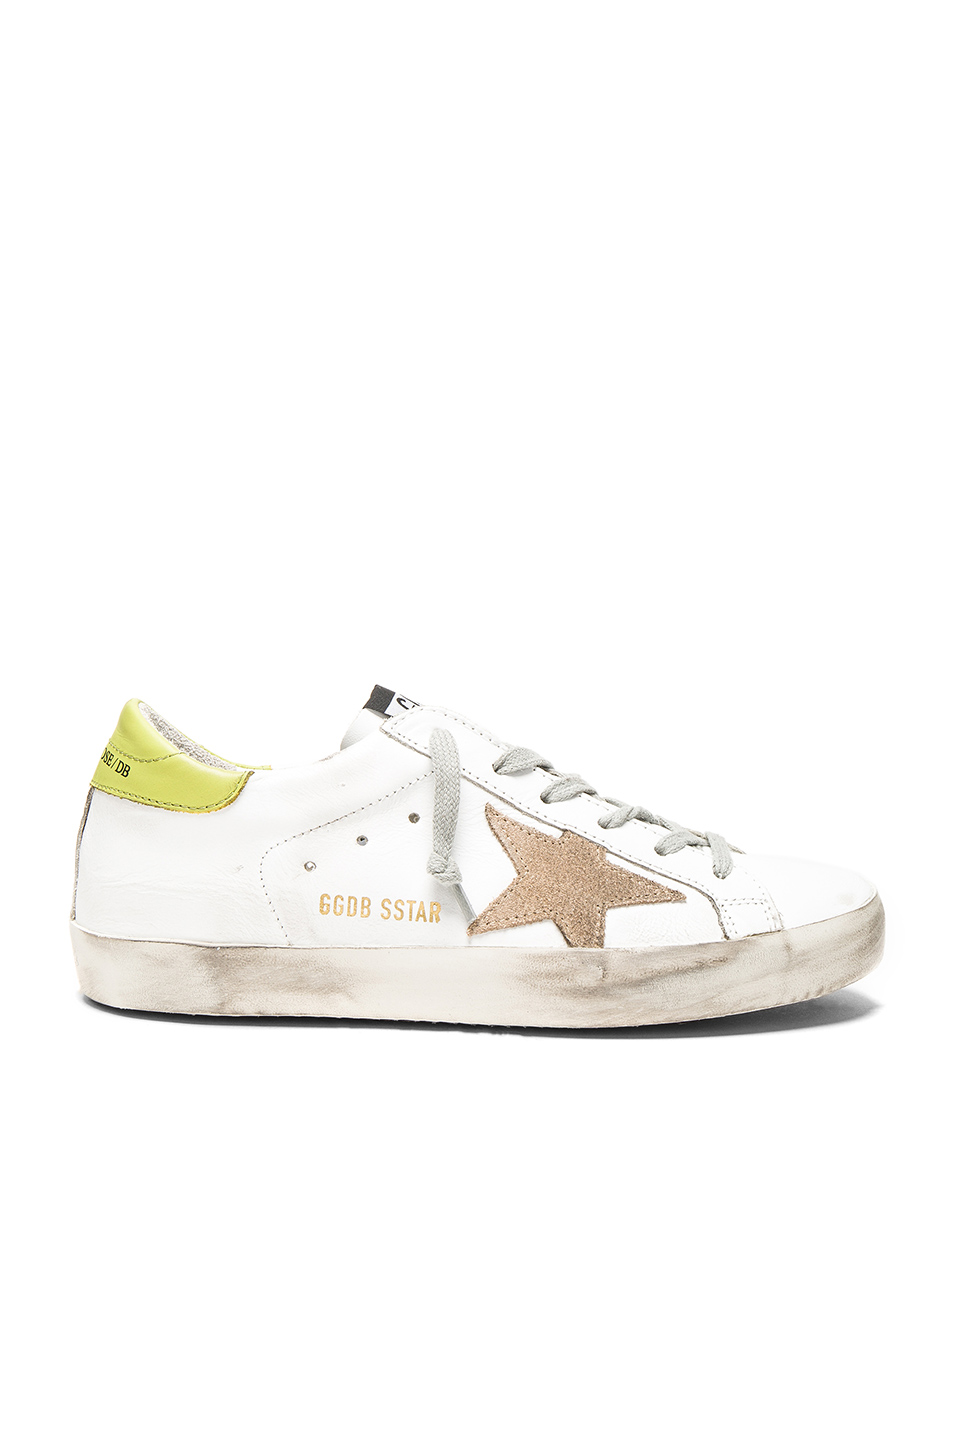 GOLDEN GOOSE Super Star Low-Top Suede And Leather Trainers in White & Wasabi